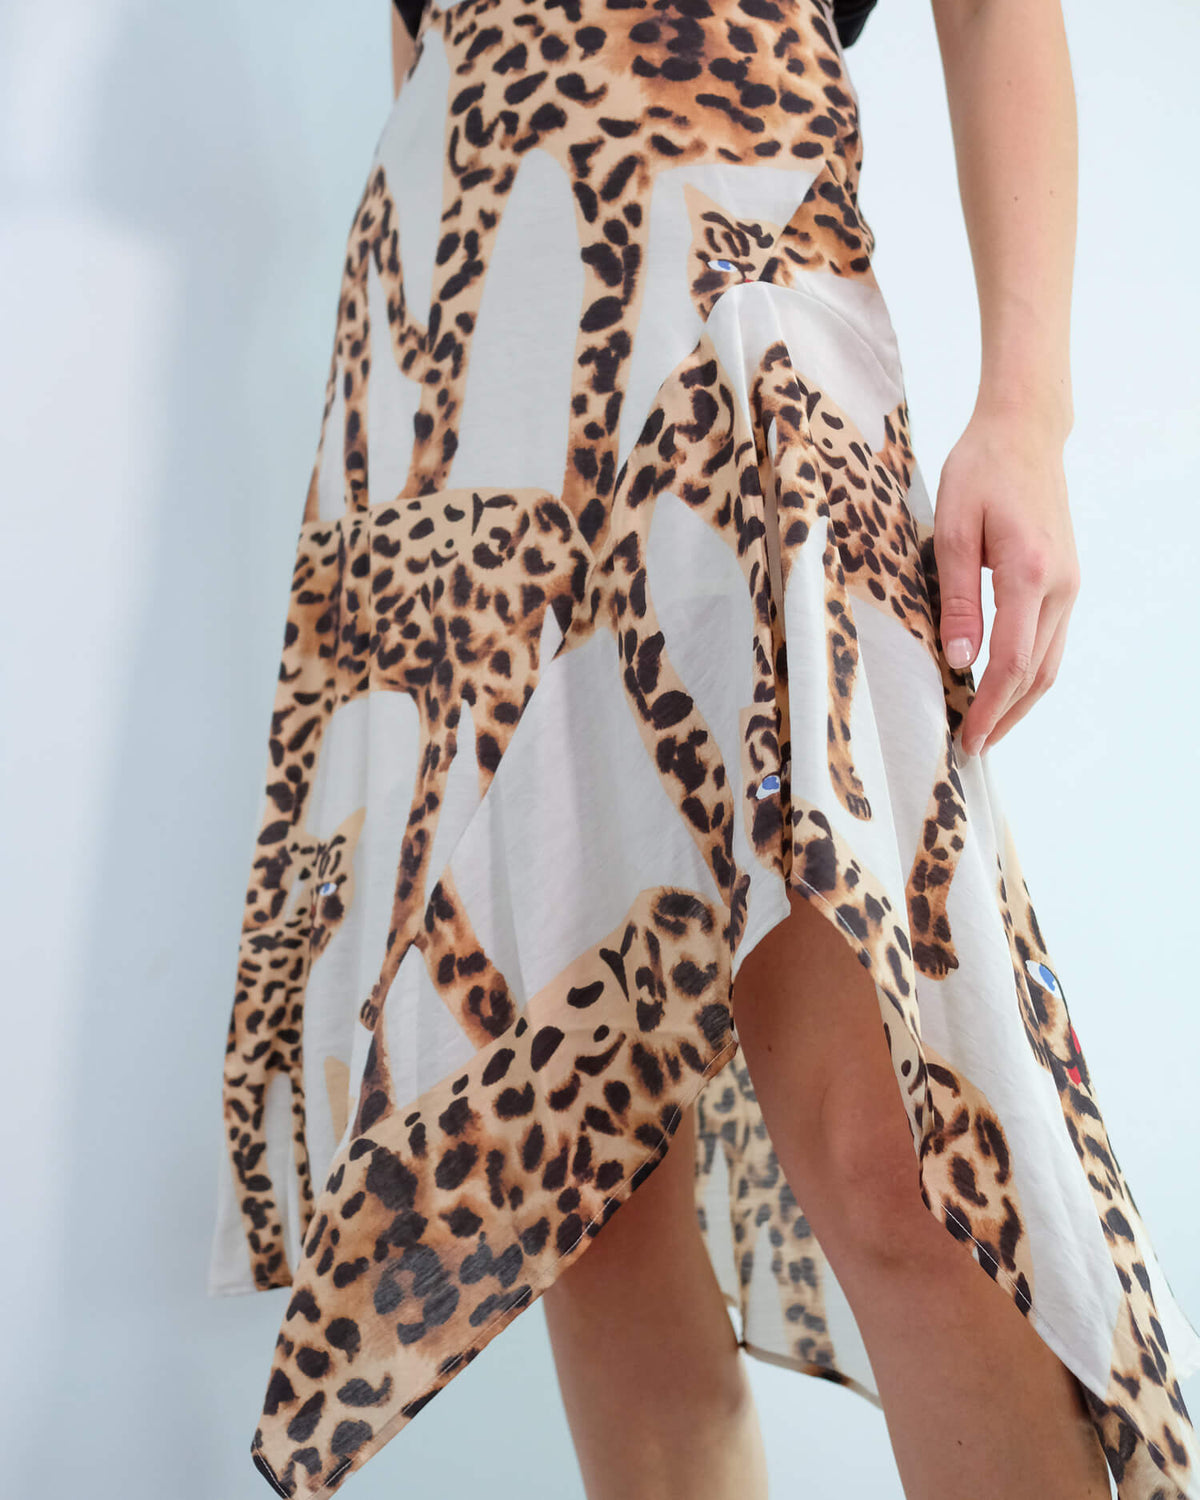 M Jeez skirt in camel